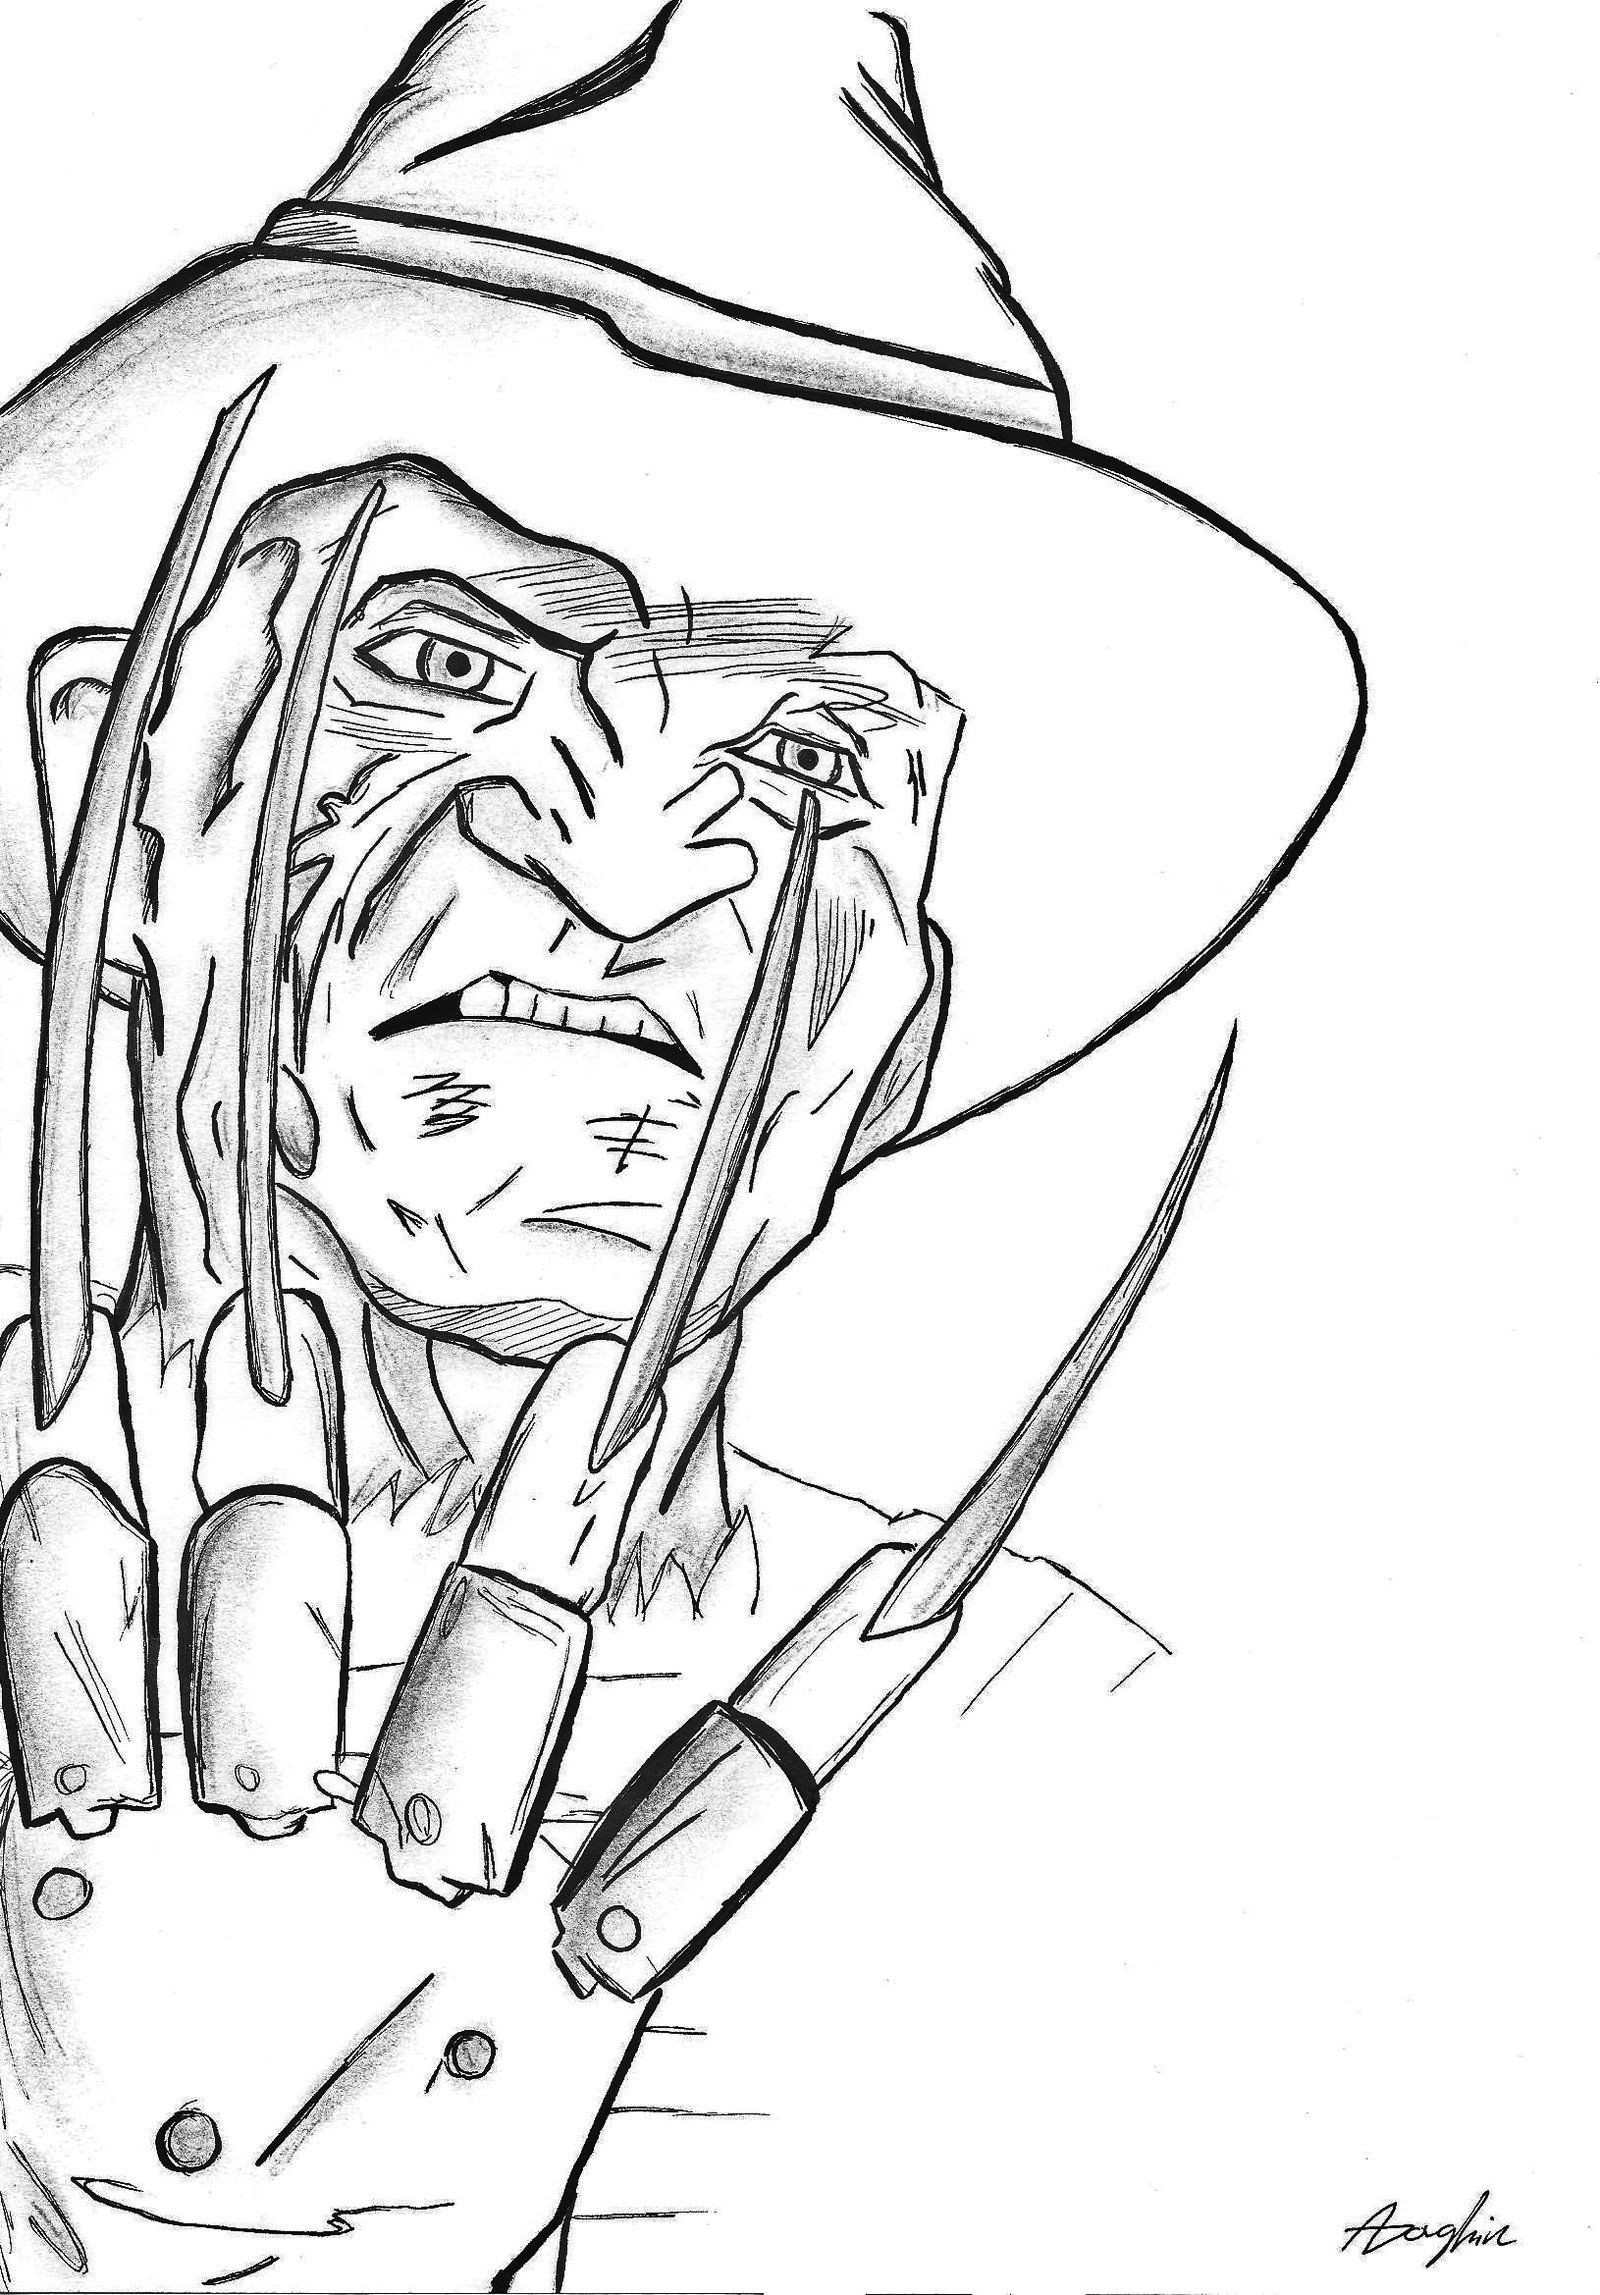 Pin By Conny Sanders On Kleurplaten Monster Coloring Pages Freddy Krueger Coloring Pages